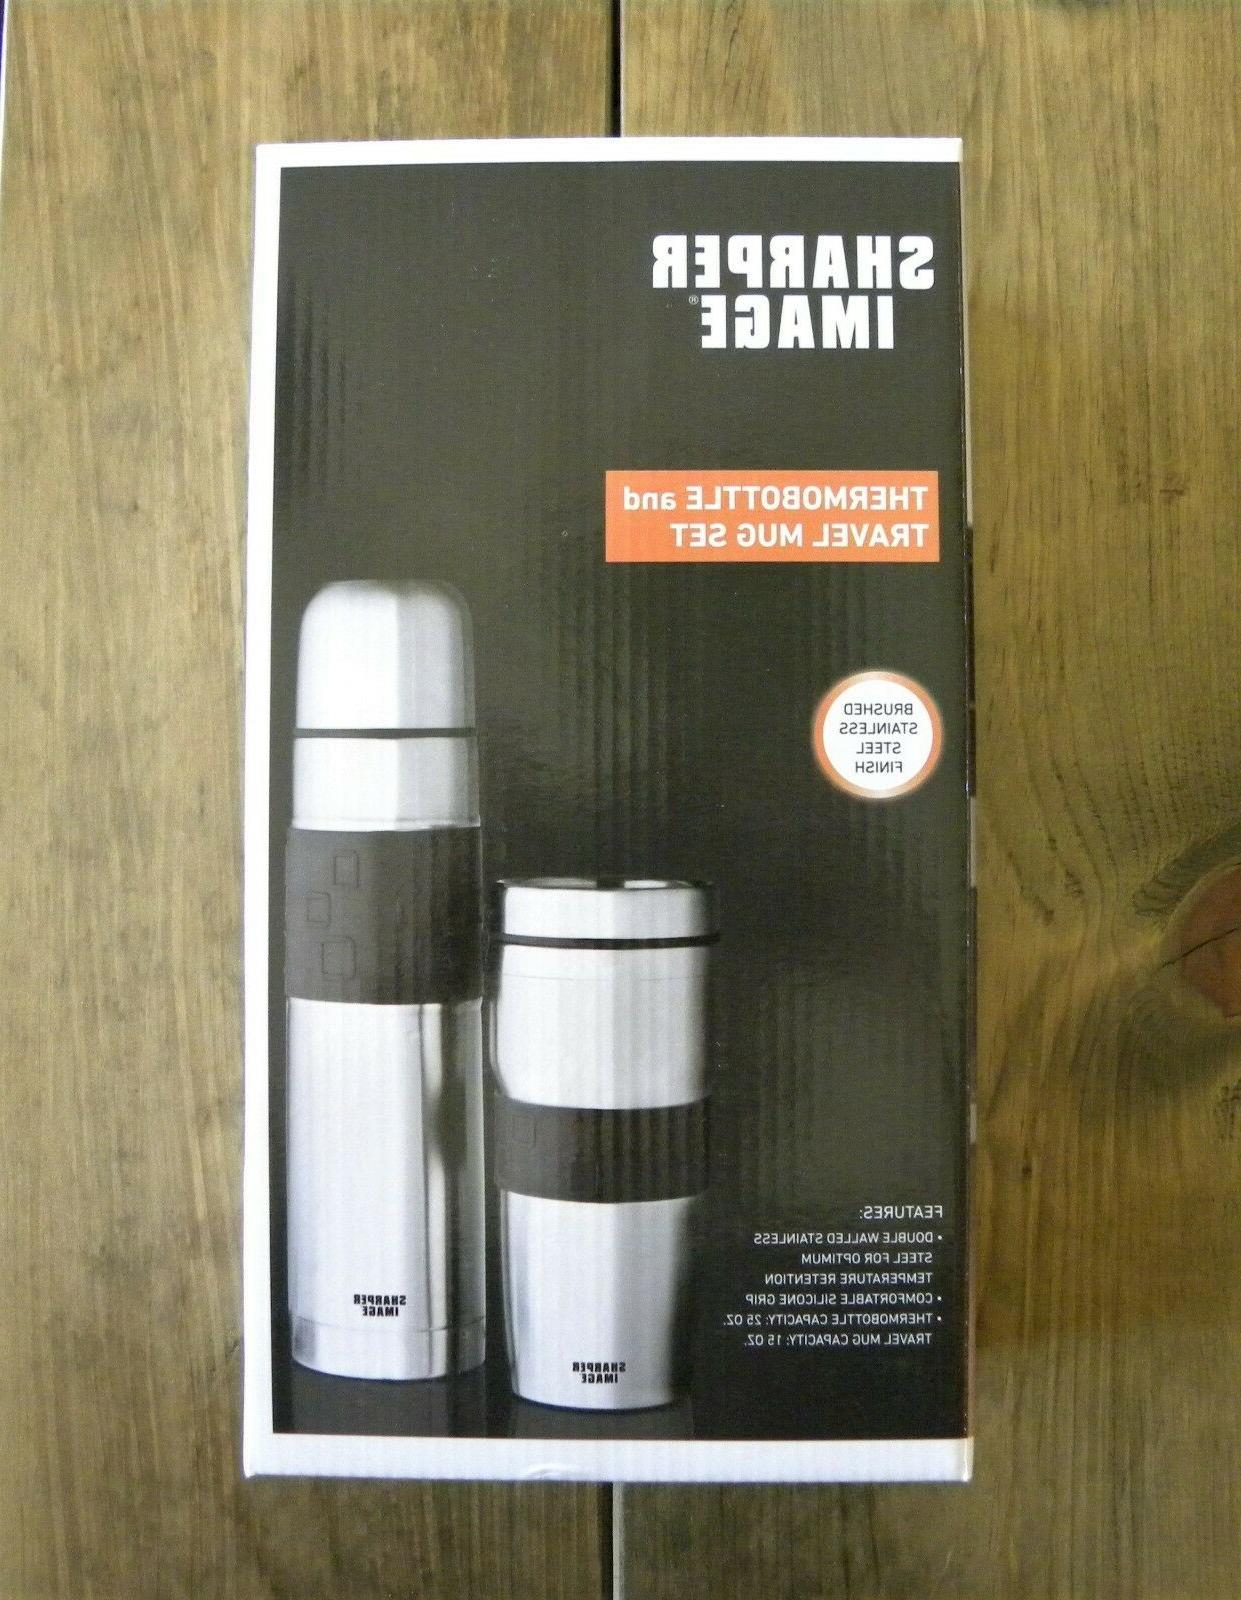 stainless steel thermo bottle mug